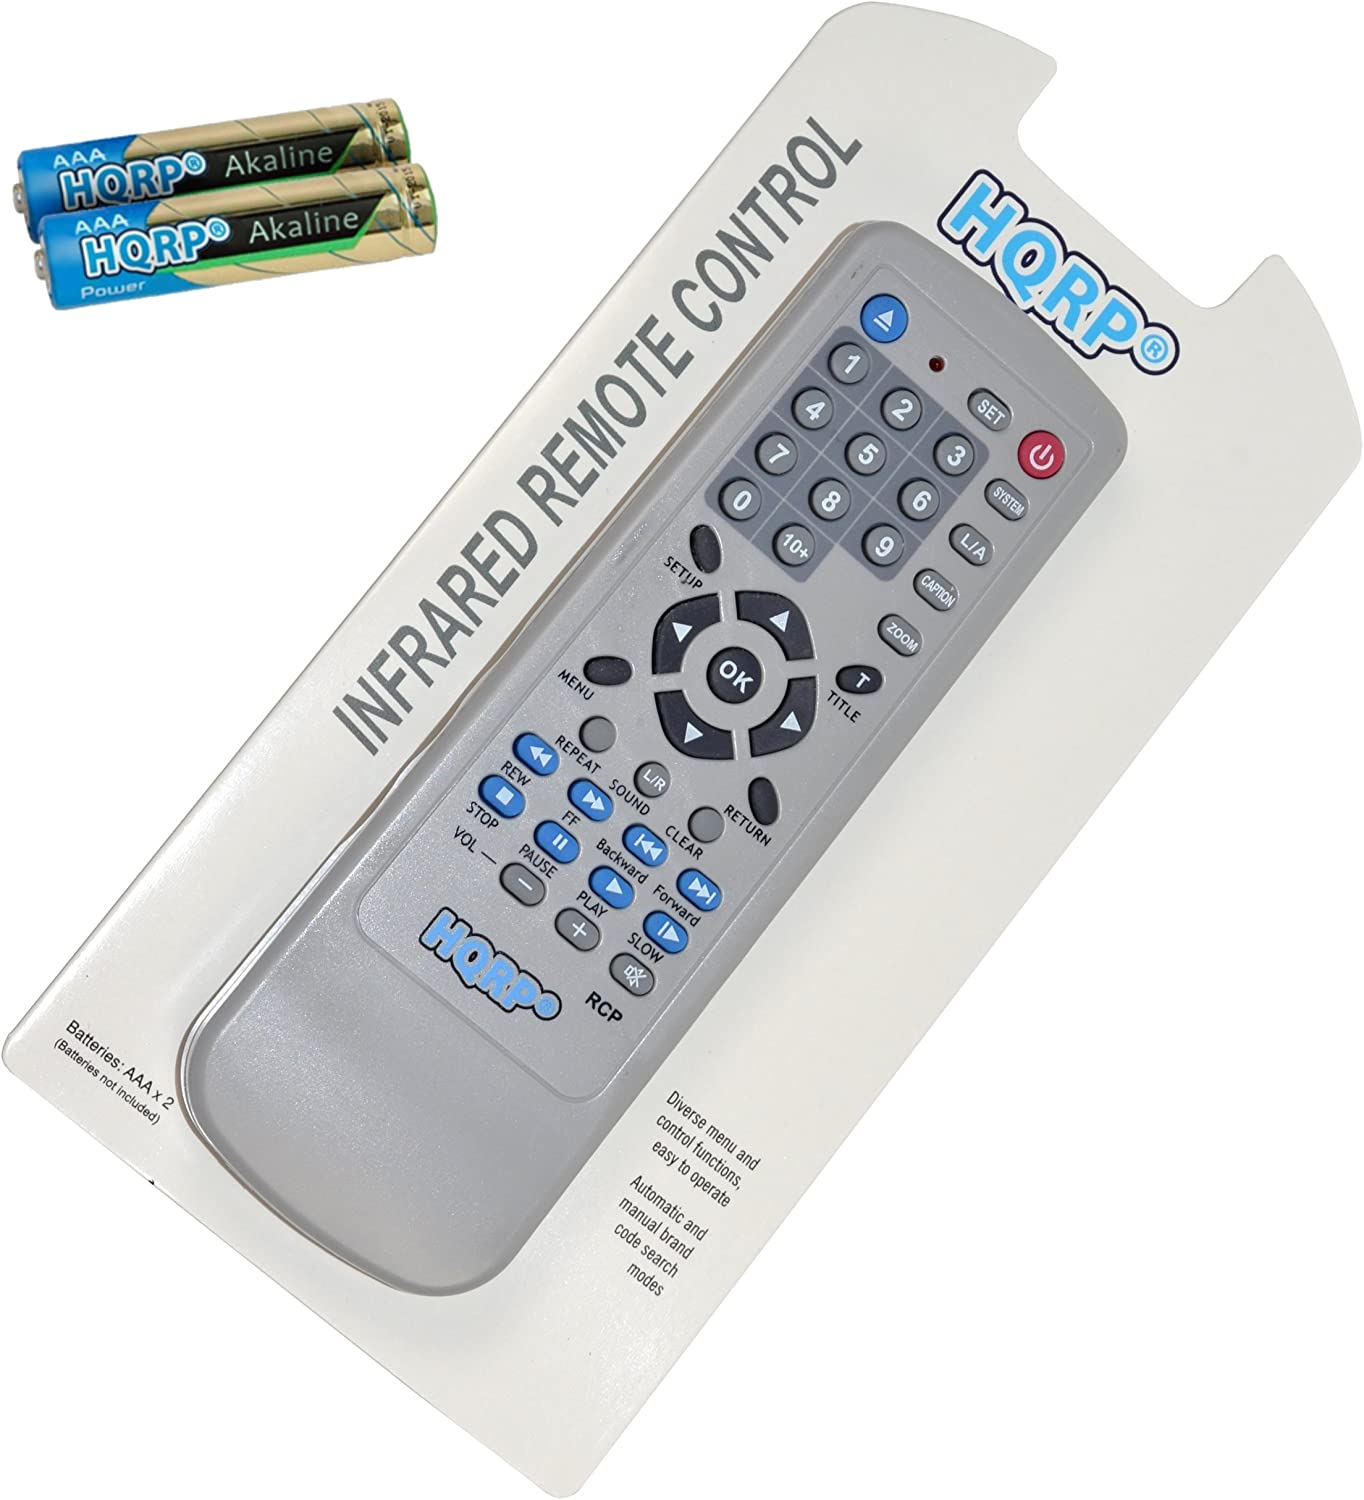 HQRP Remote Control Compatible with Sony DVP-NS700P DVP-NS70H DVP-NS710H DVP-NS715P DVP-NS71HP DVP-NS725P Blu-ray Disc DVD Player